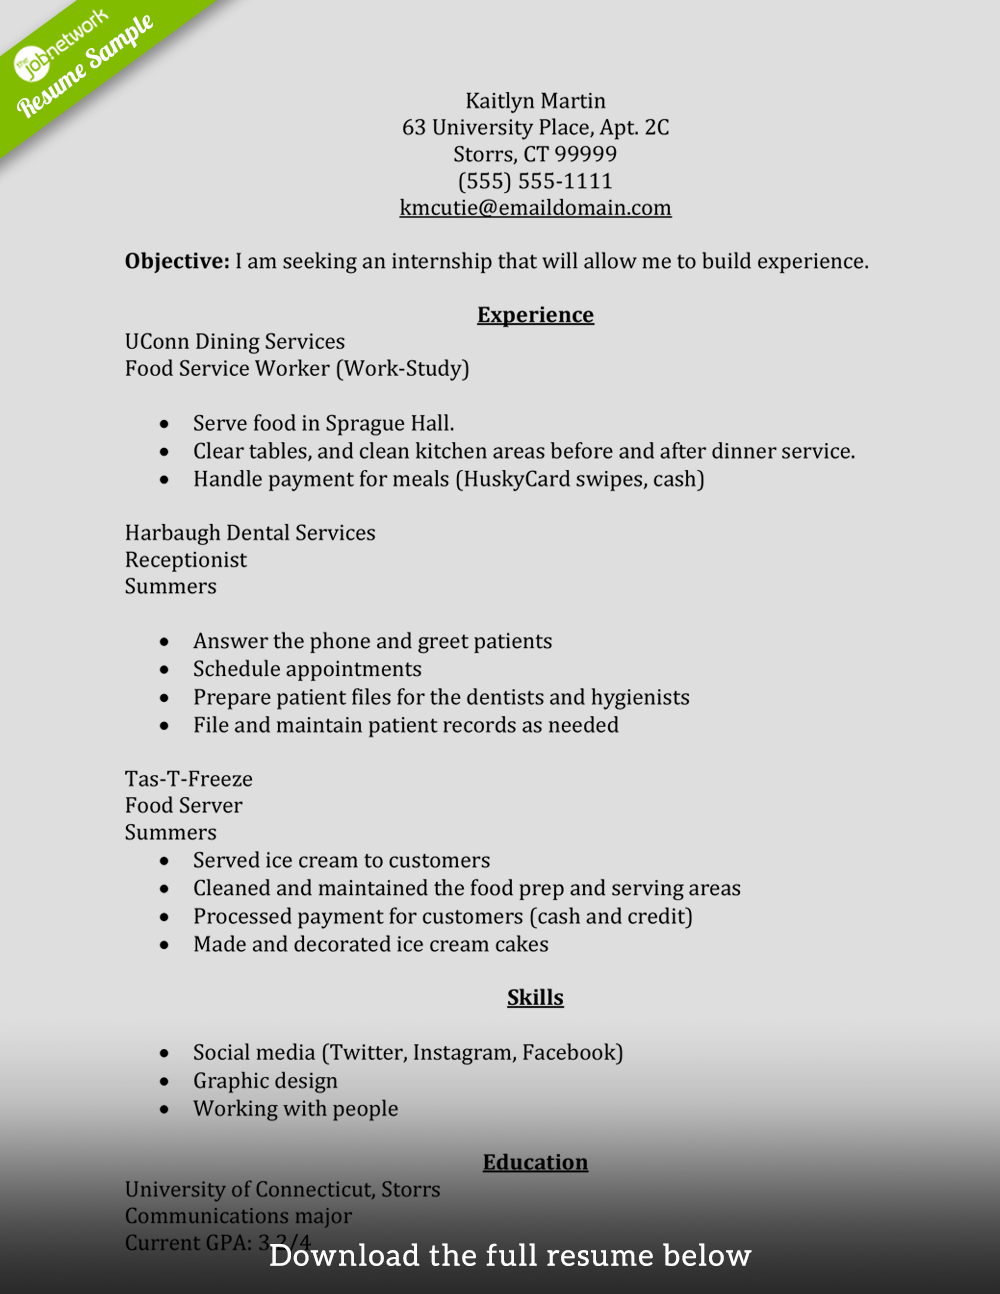 How to Write a Perfect Internship Resume (Examples Included)